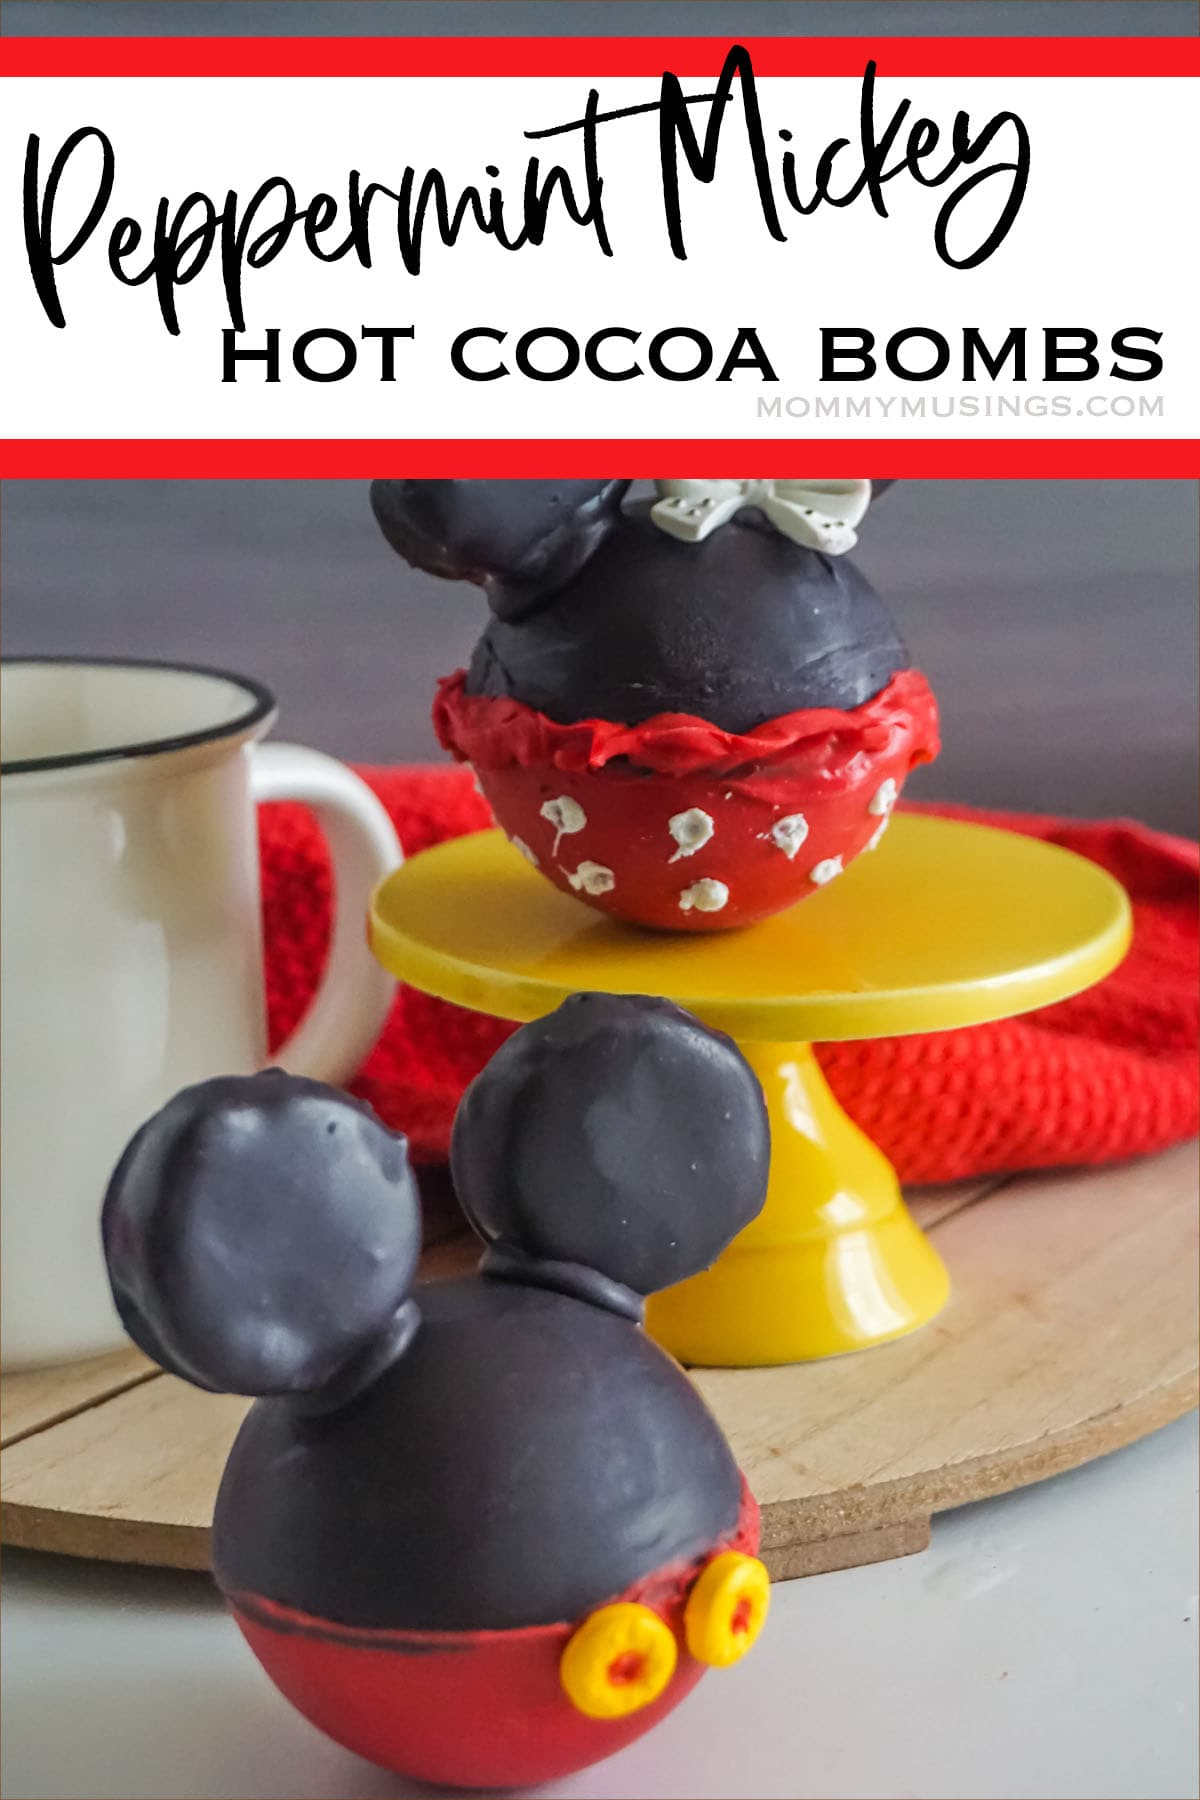 peppermint flavored hot cocoa bombs with mickey ears with text which reads peppermint mickey hot cocoa bombs